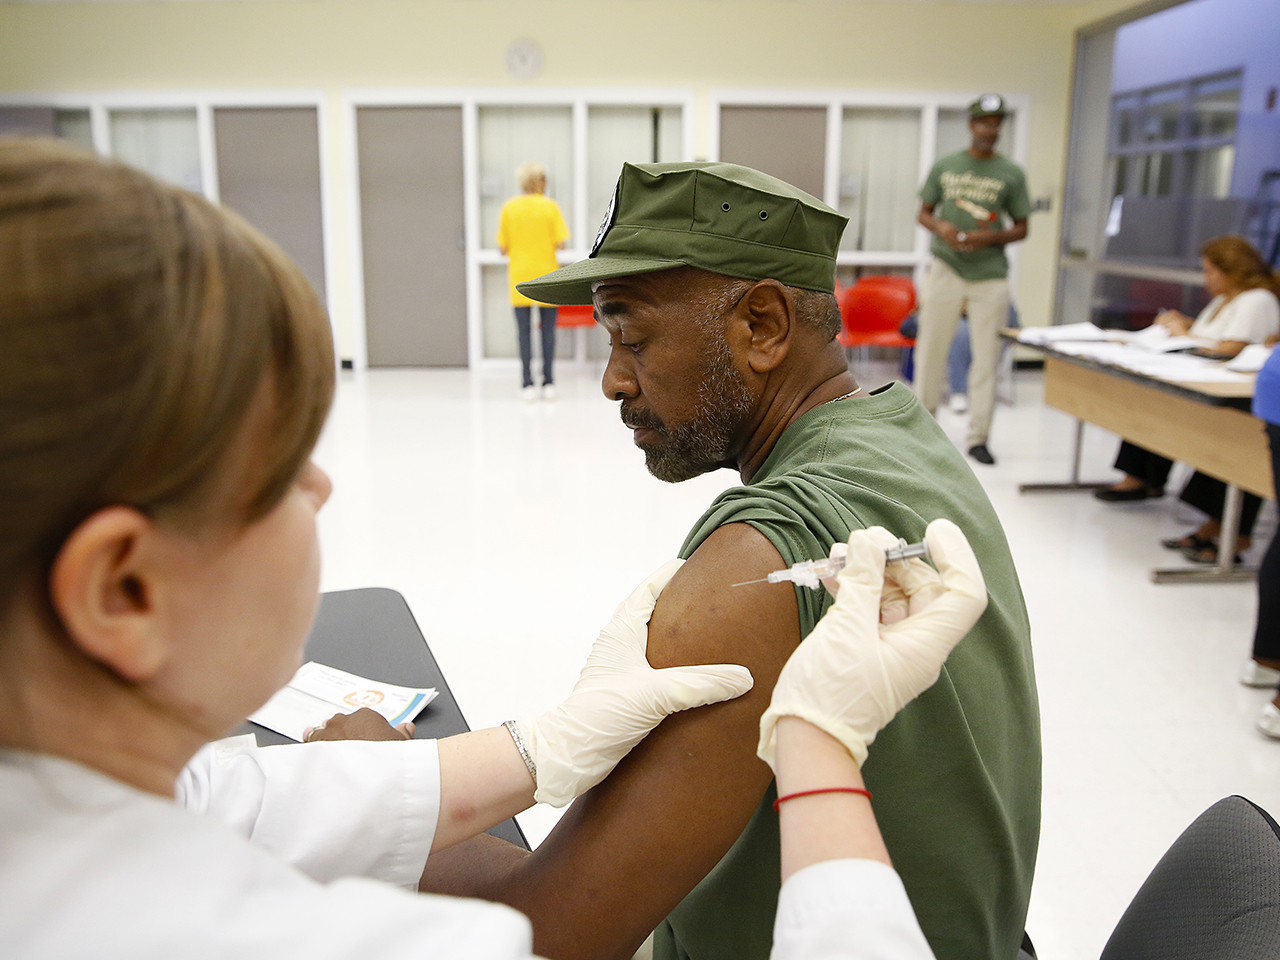 IMAGE DISTRIBUTED FOR NATIONAL COUNCIL ON AGING AND SANOFI PASTEUR - Joseph Robert receives his flu shot during the Falls and Flu Prevention Day at th...